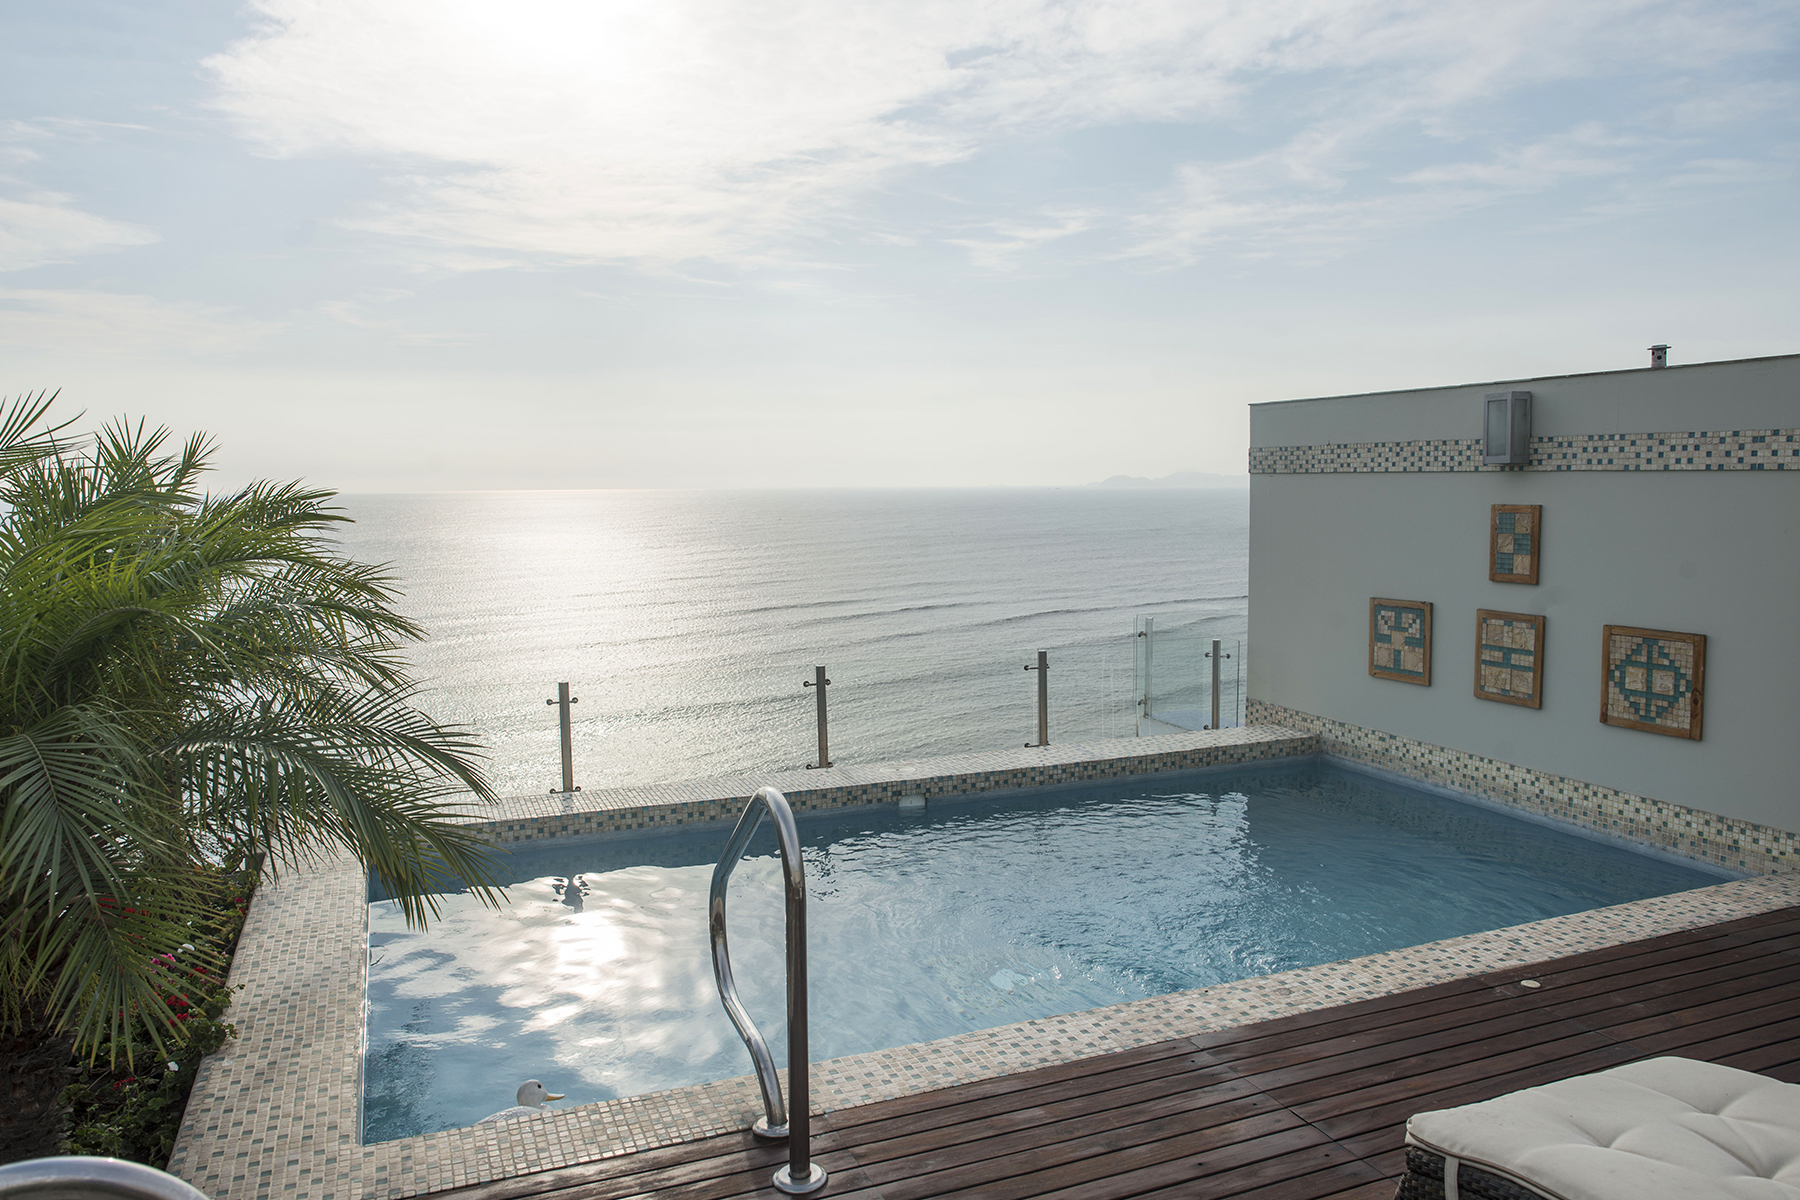 Luxurious pent-house with spectacular ocean view Malecón Junin Barranco, Lima 04 Peru